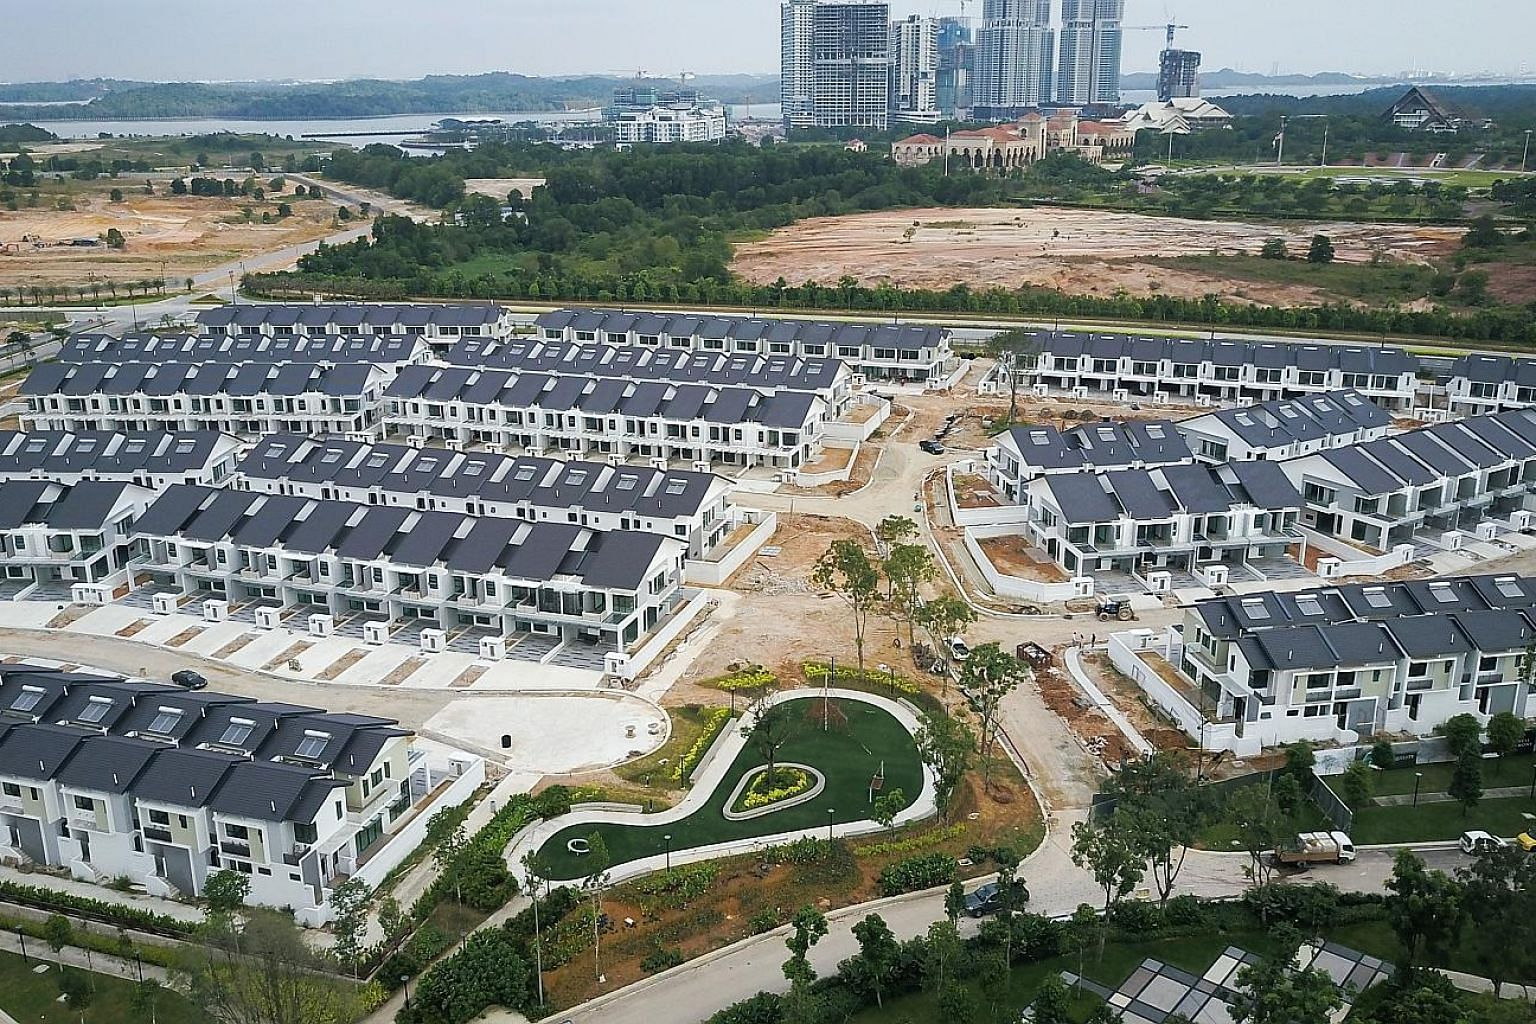 UEM Sunrise's Estuari Gardens in Iskandar Puteri. UEM regards the hype generated by the huge Chinese investment as a bonus as it has raised awareness of the Iskandar Malaysia development, and given its own projects a lift.